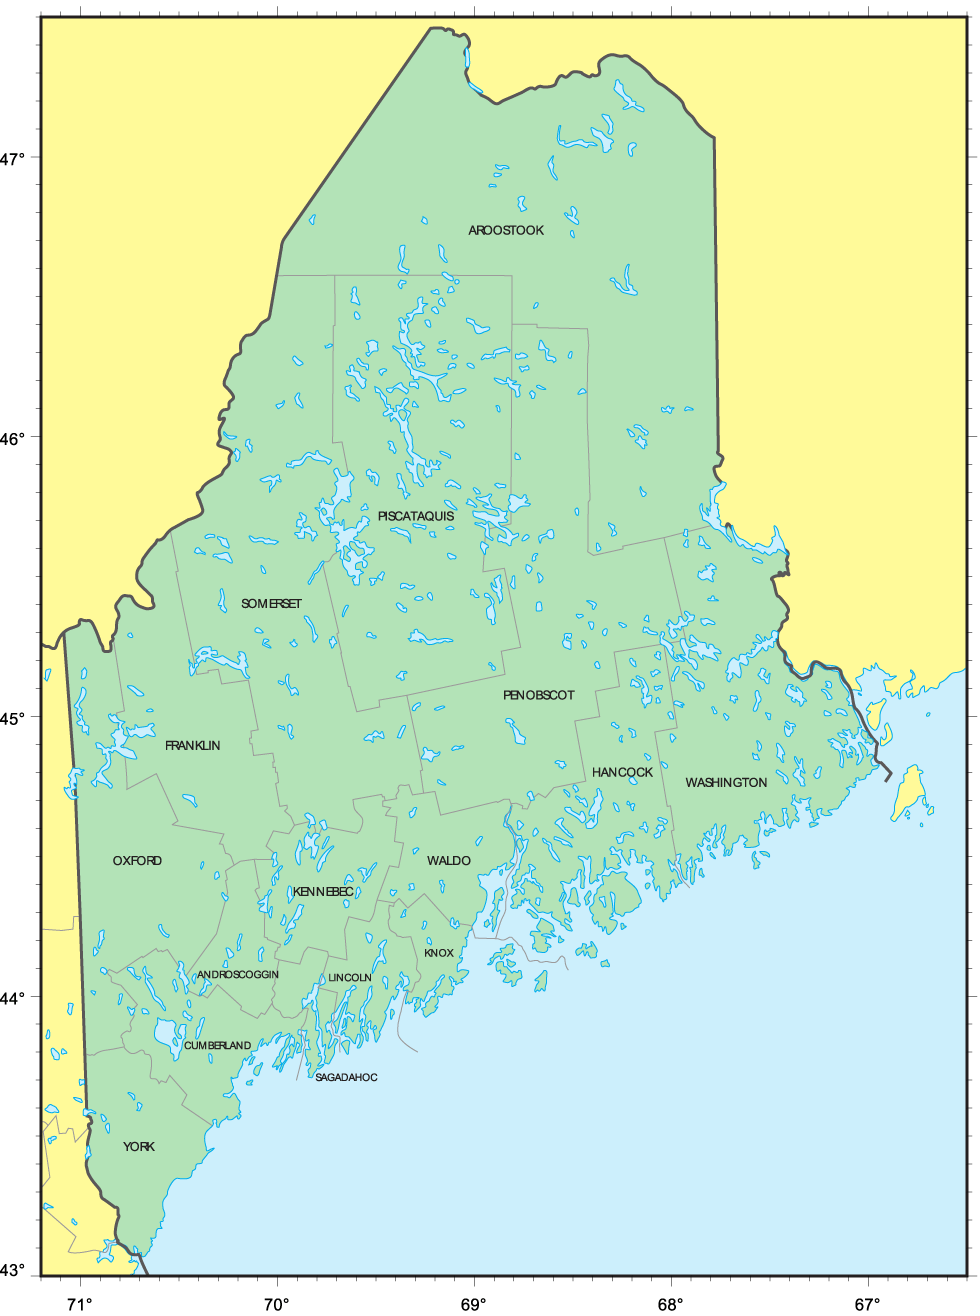 Counties Map of Maine • Mapsof.net